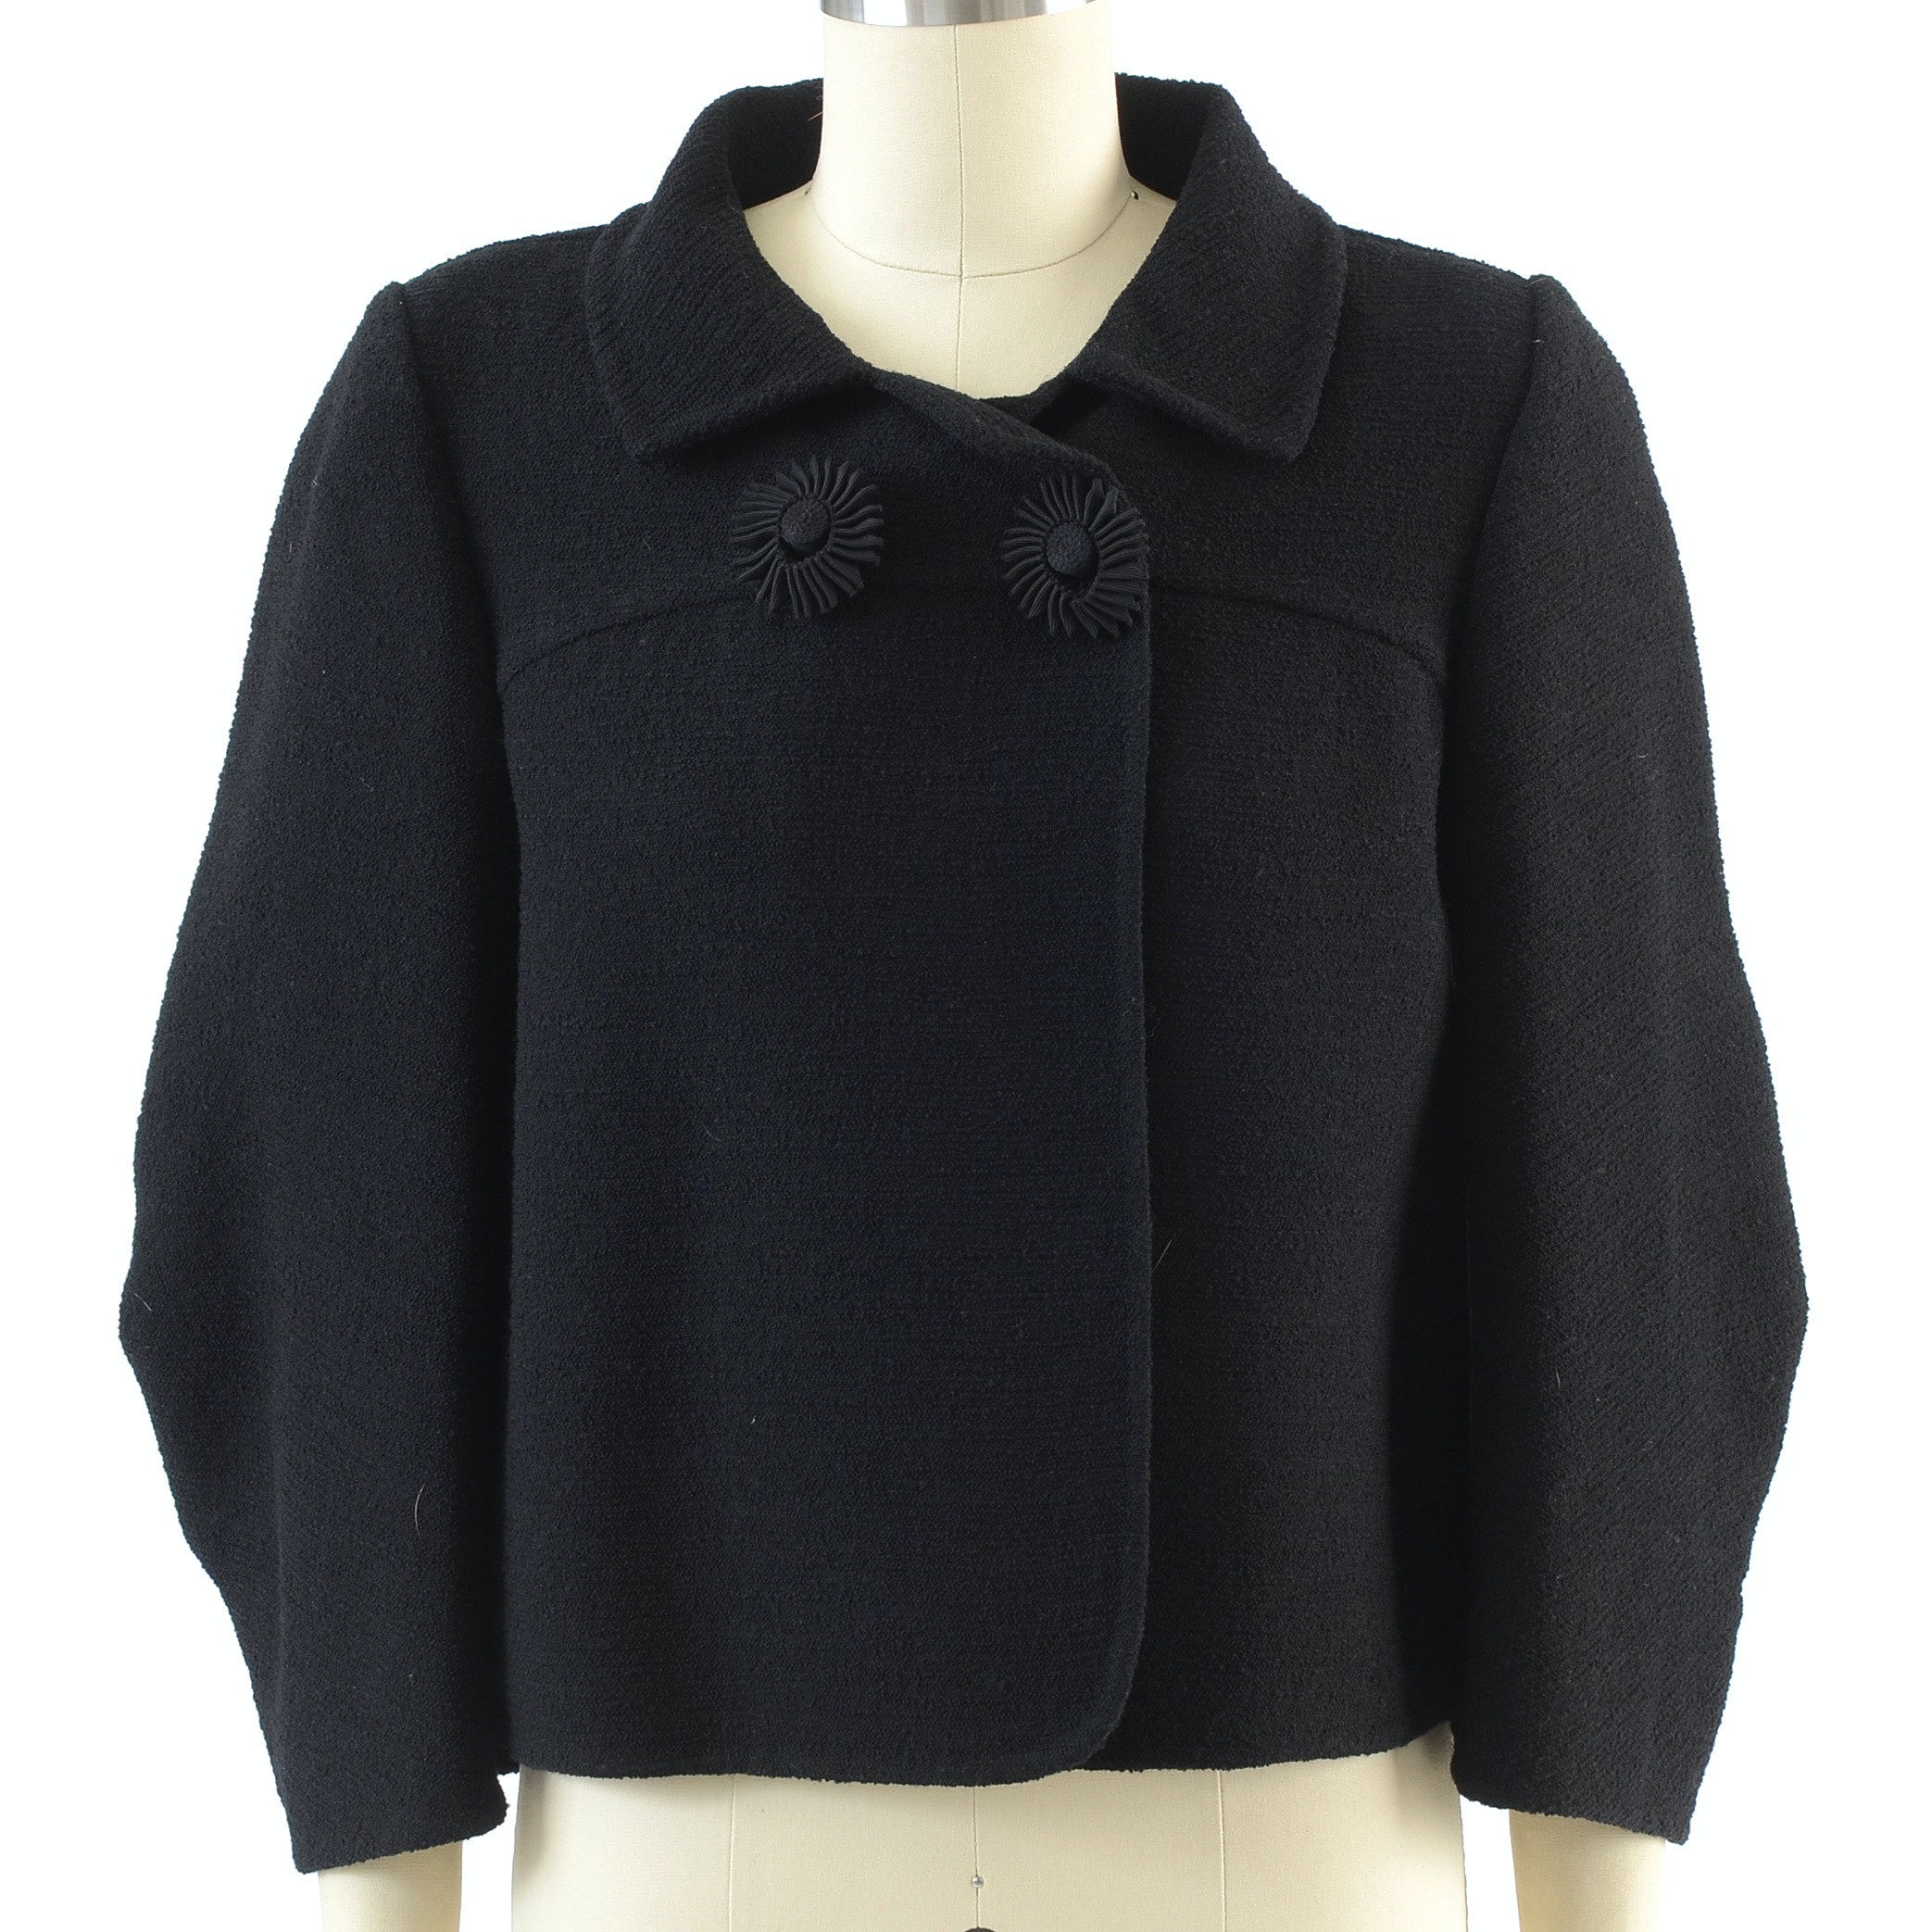 Oscar De La Renta Black Wool Blend Vintage Inspired Crop Jacket